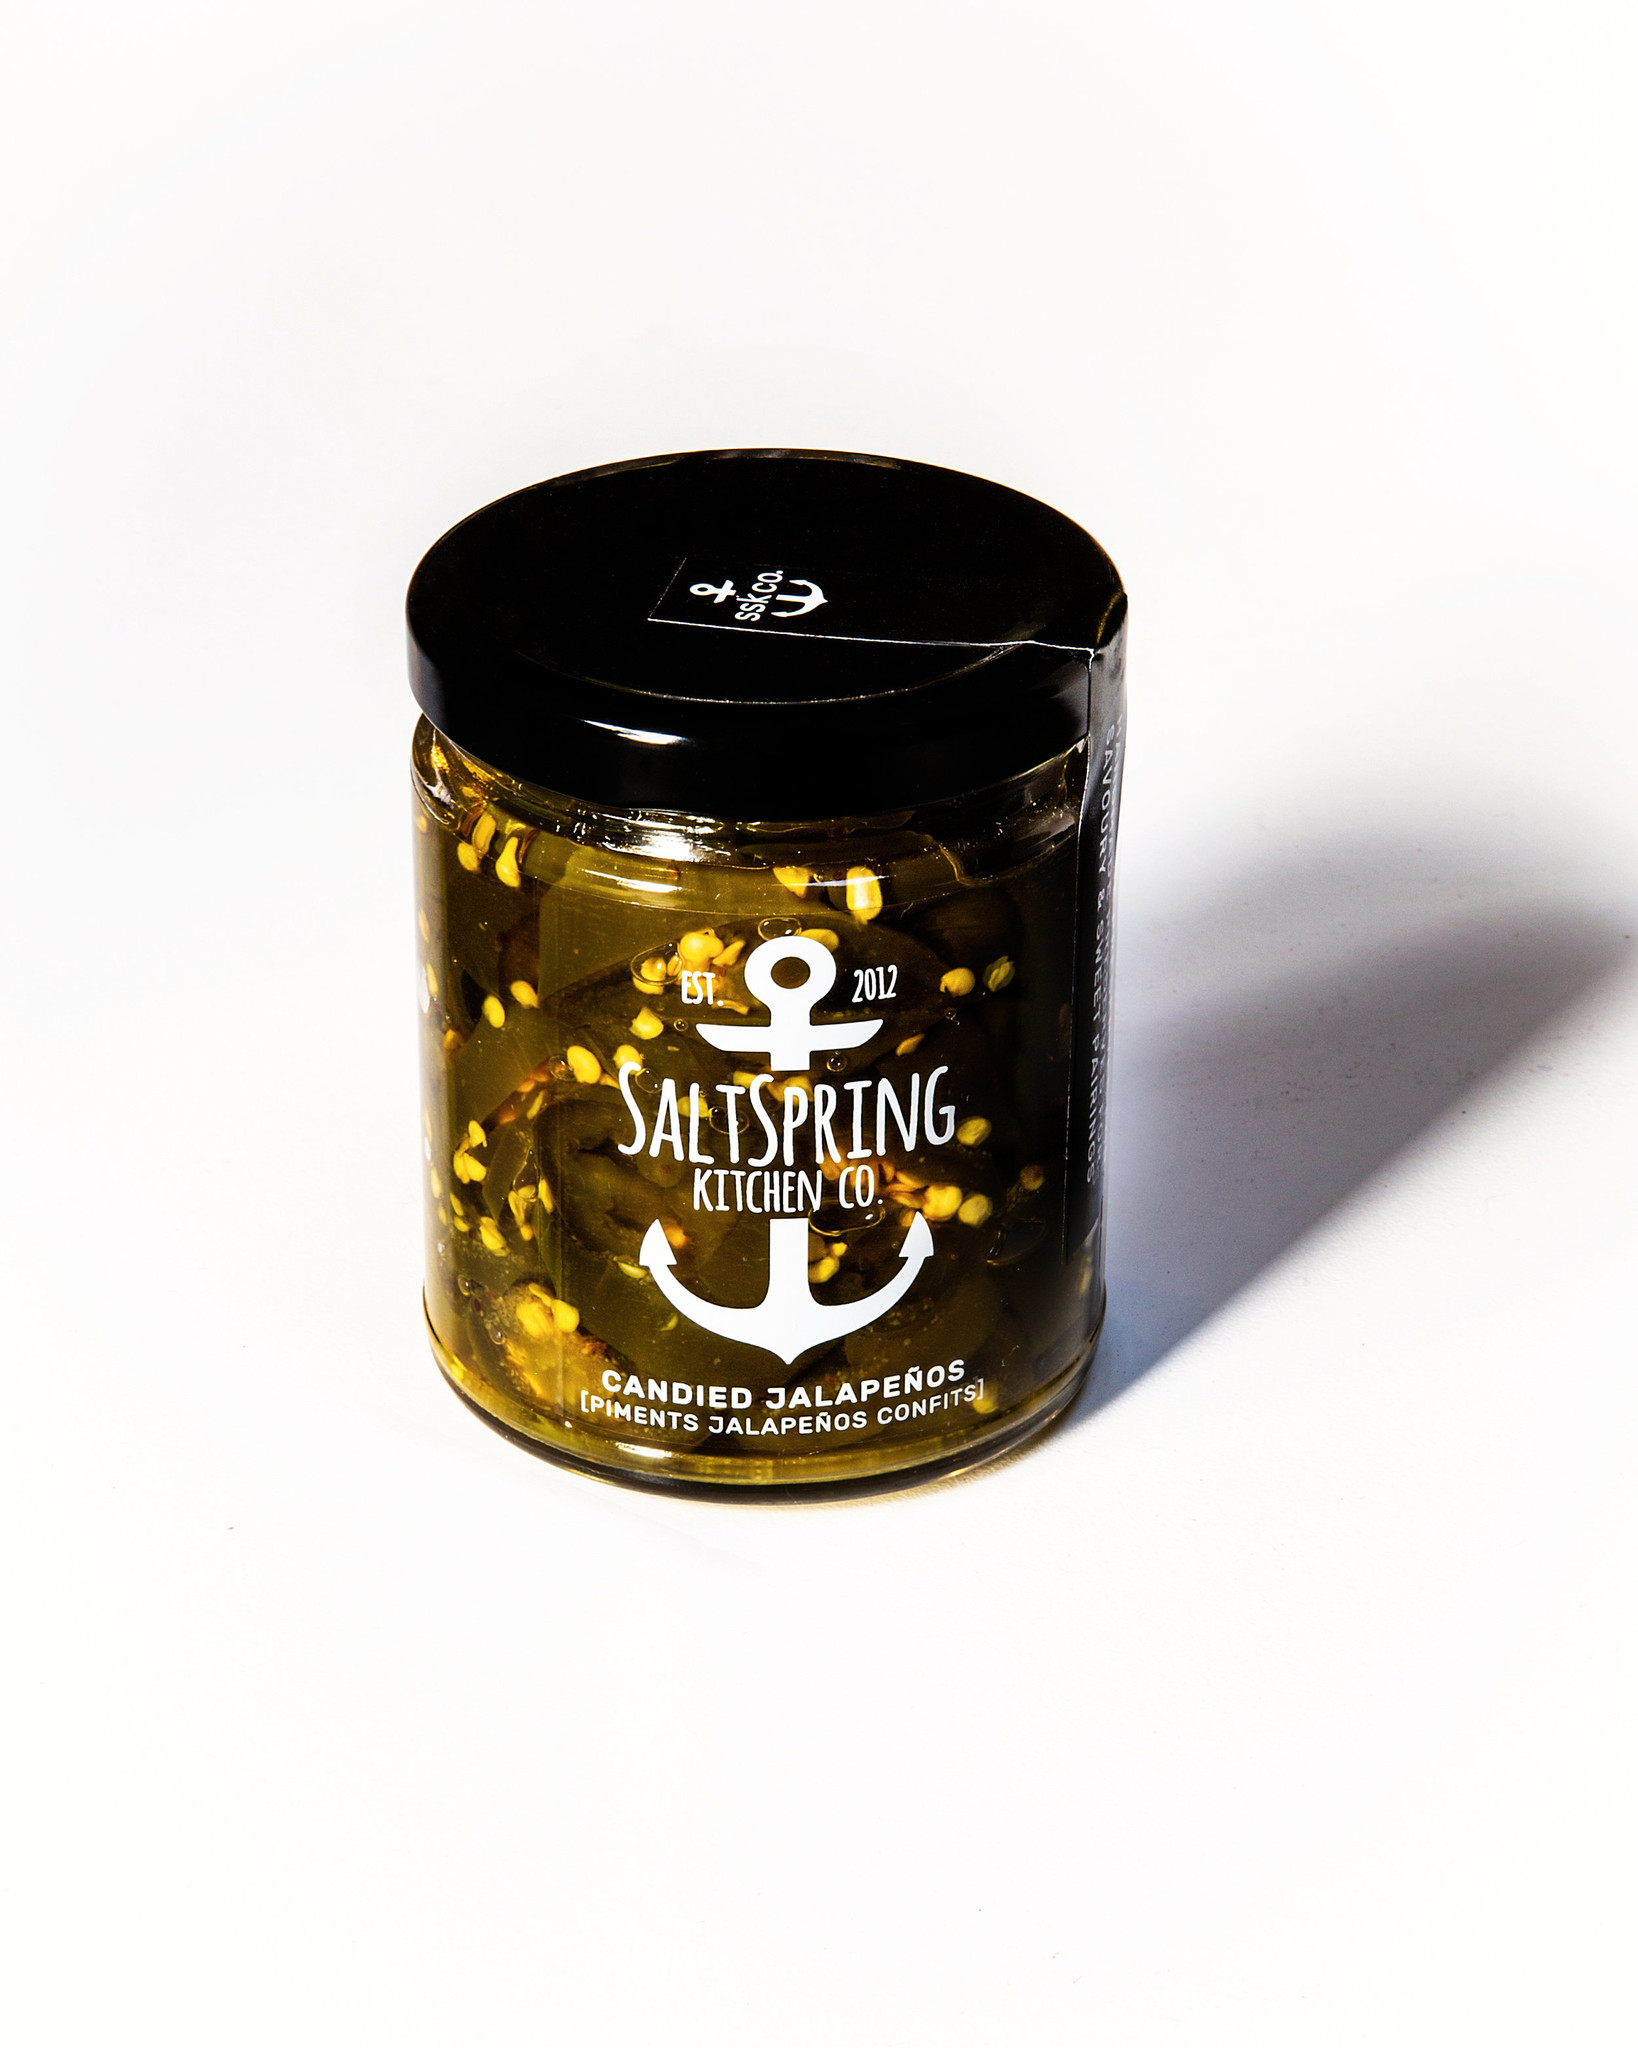 SSK Candied Jalapeños